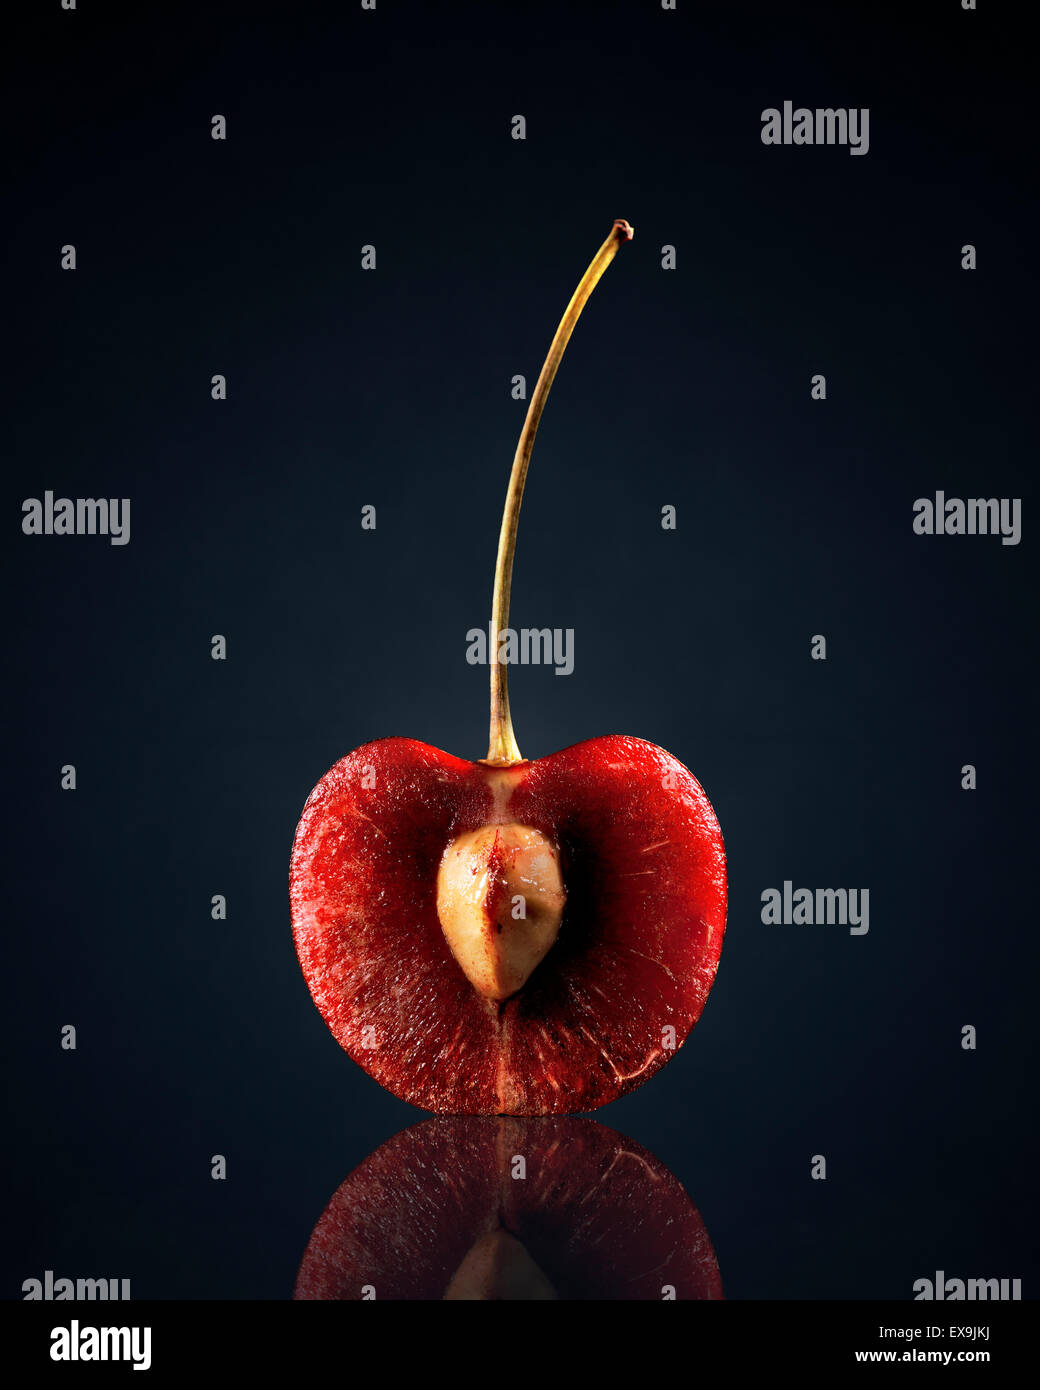 Red Cherry (halved) with reflection on dark background Stock Photo